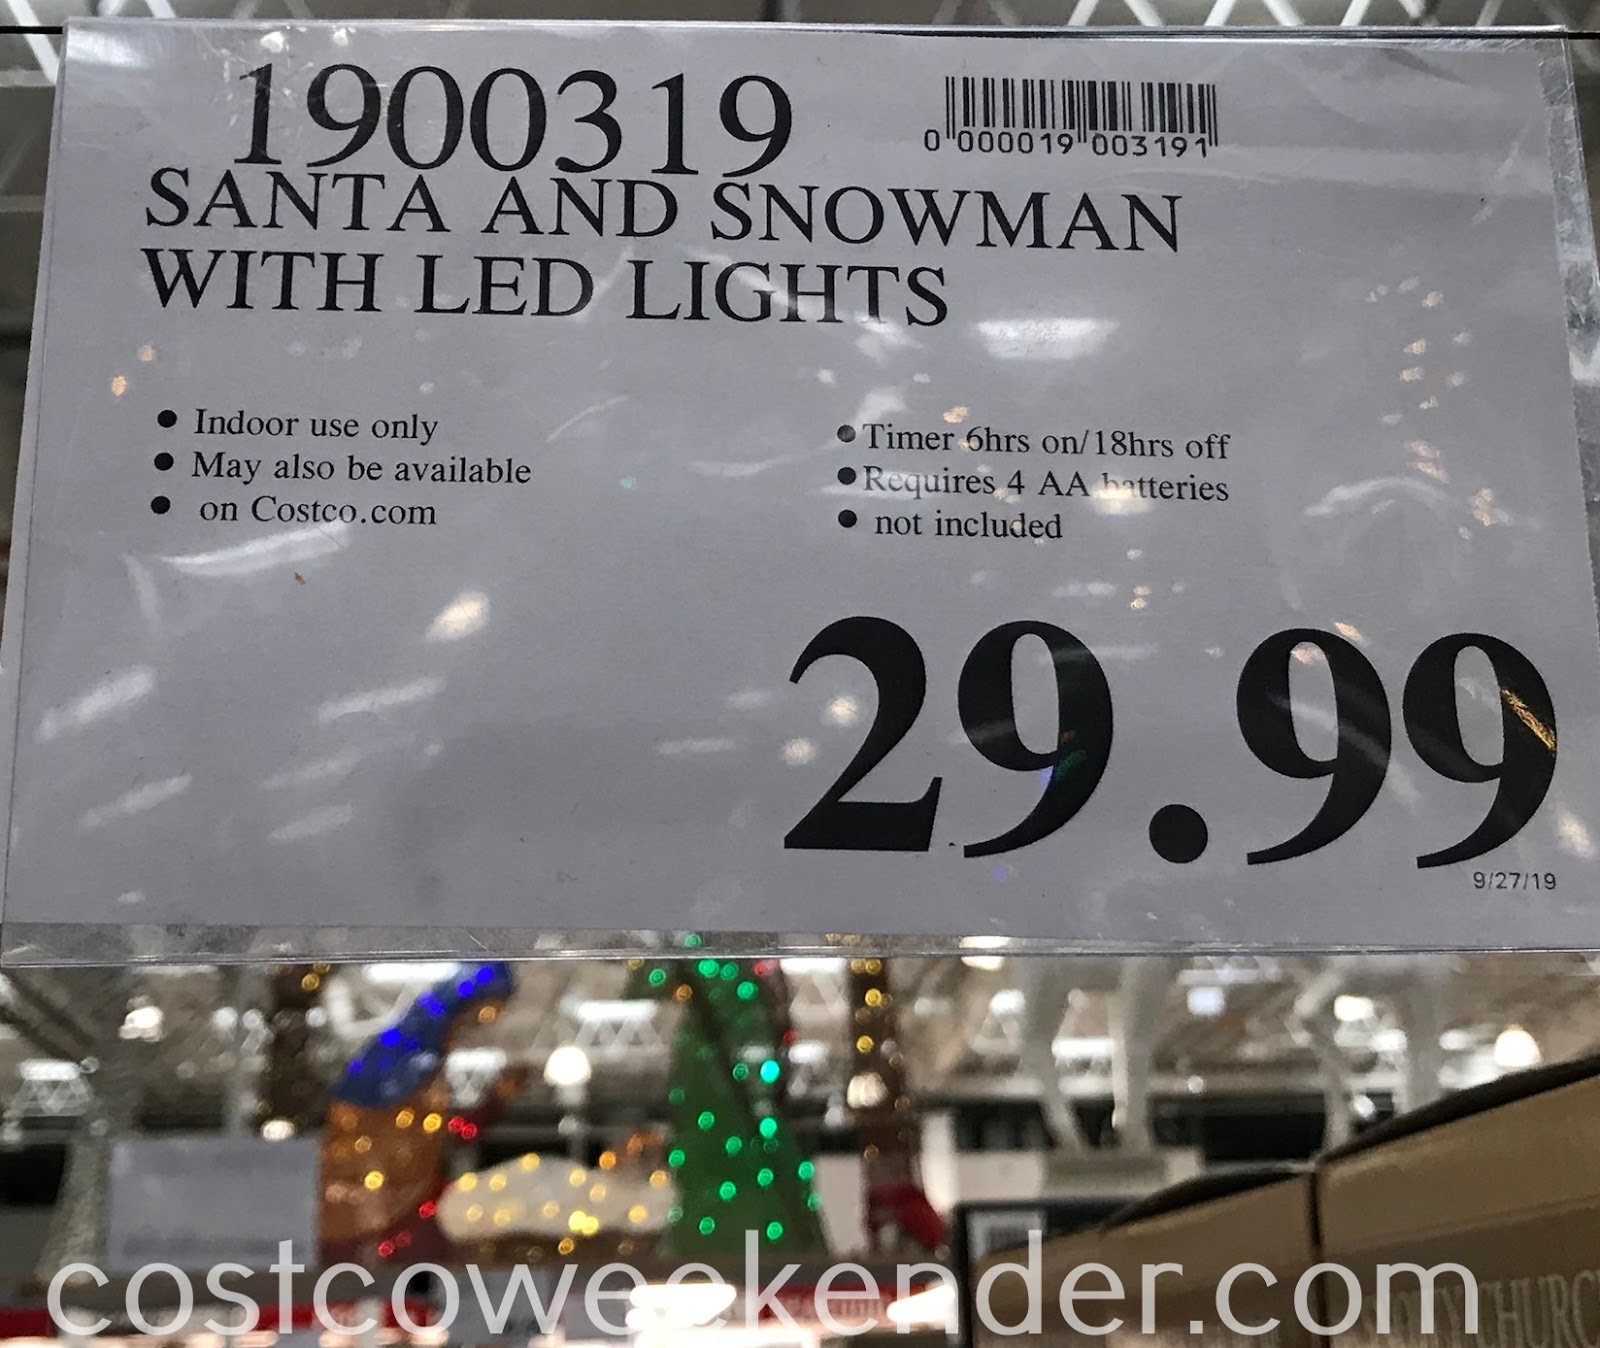 Deal for the Santa and Snowman with LED Lights at Costco